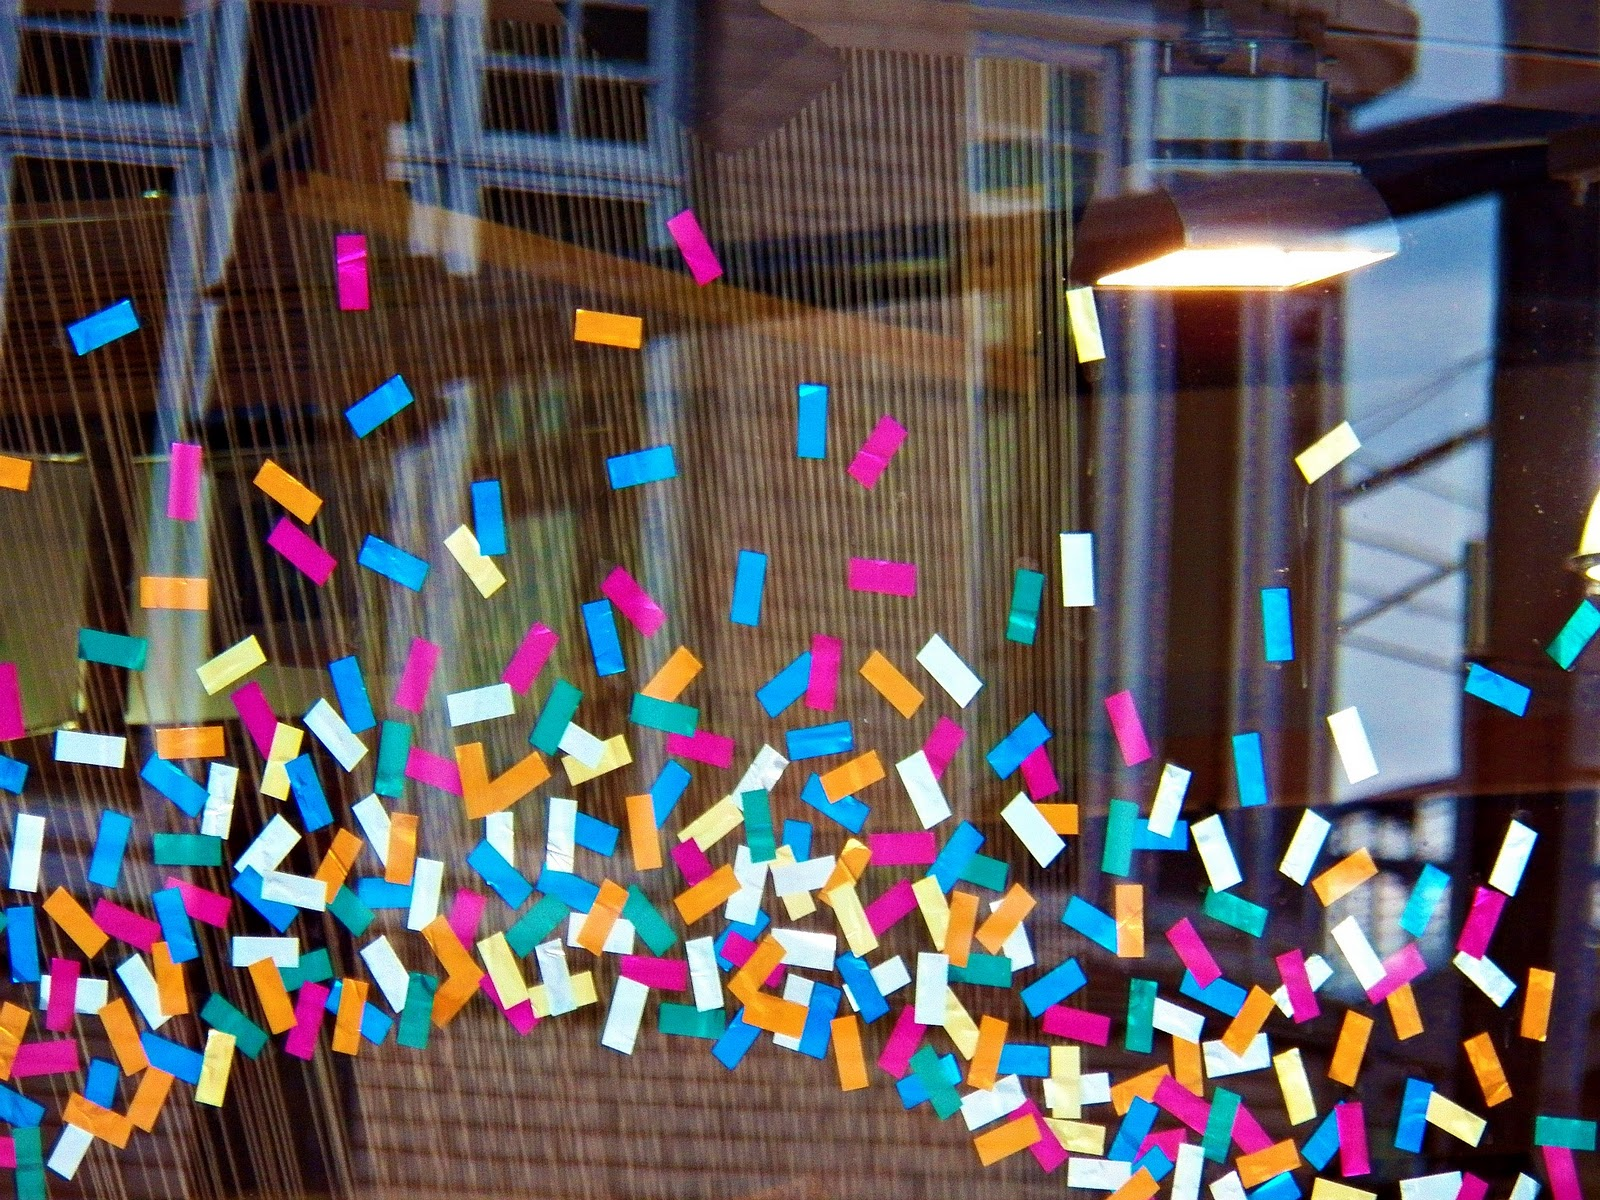 If you want to see something simple in a window display but also representative, what could better represent a New Year's Eve party than confetti clusters?